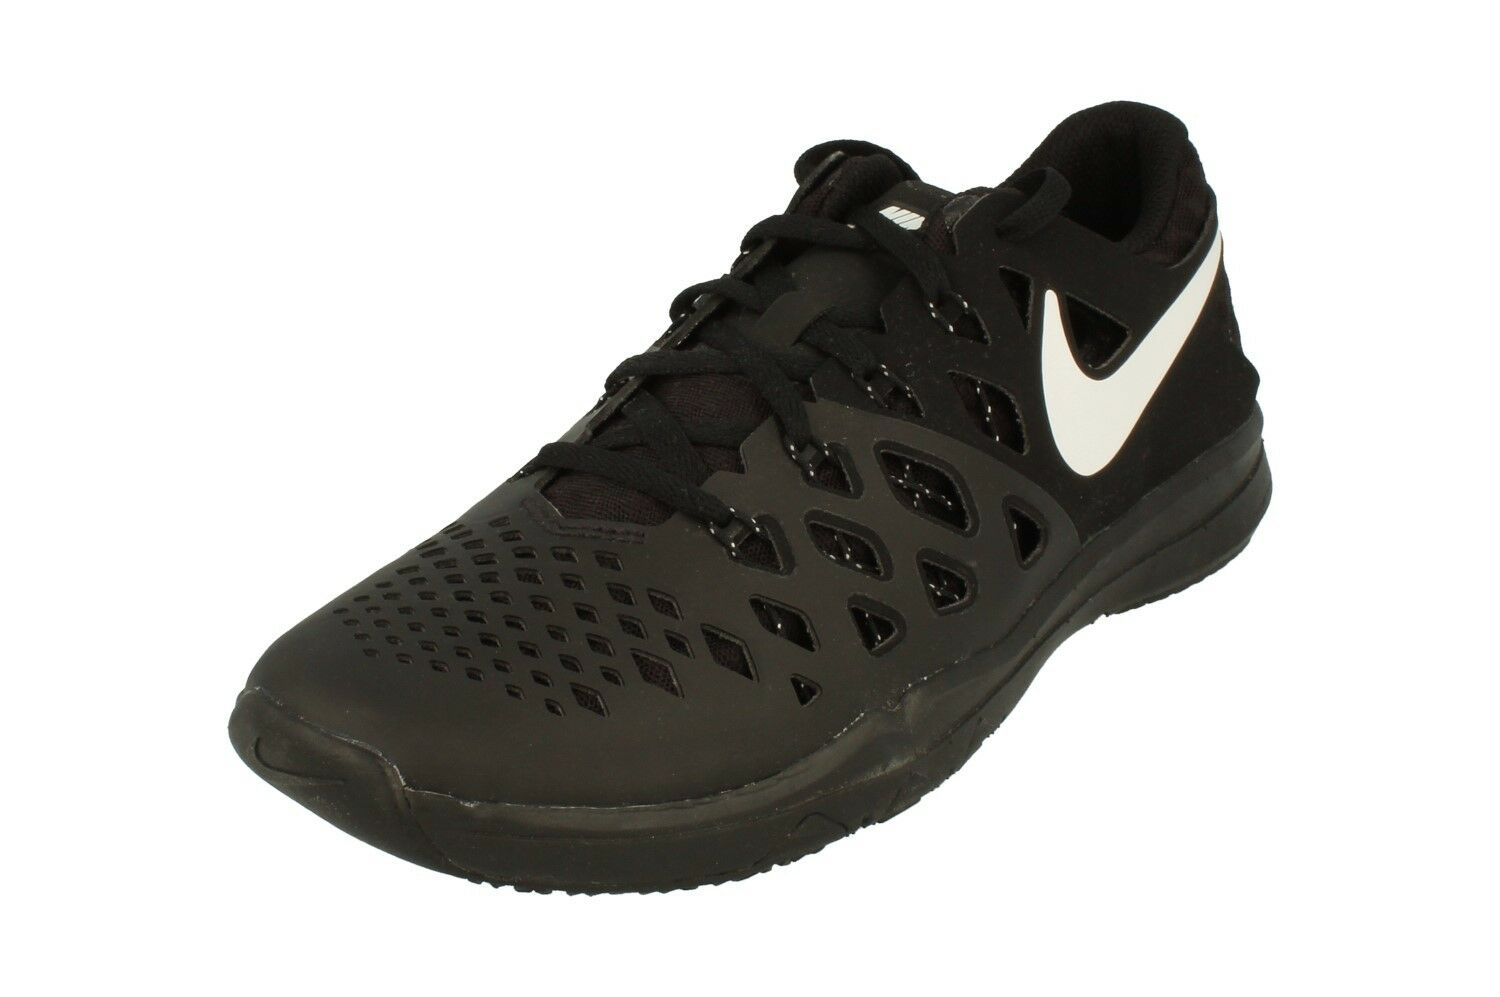 info for 8af64 ecb68 Nike Nike Nike Train Speed 4 Pour Homme Running Baskets 833259 Baskets  Chaussures 010 cdffcb